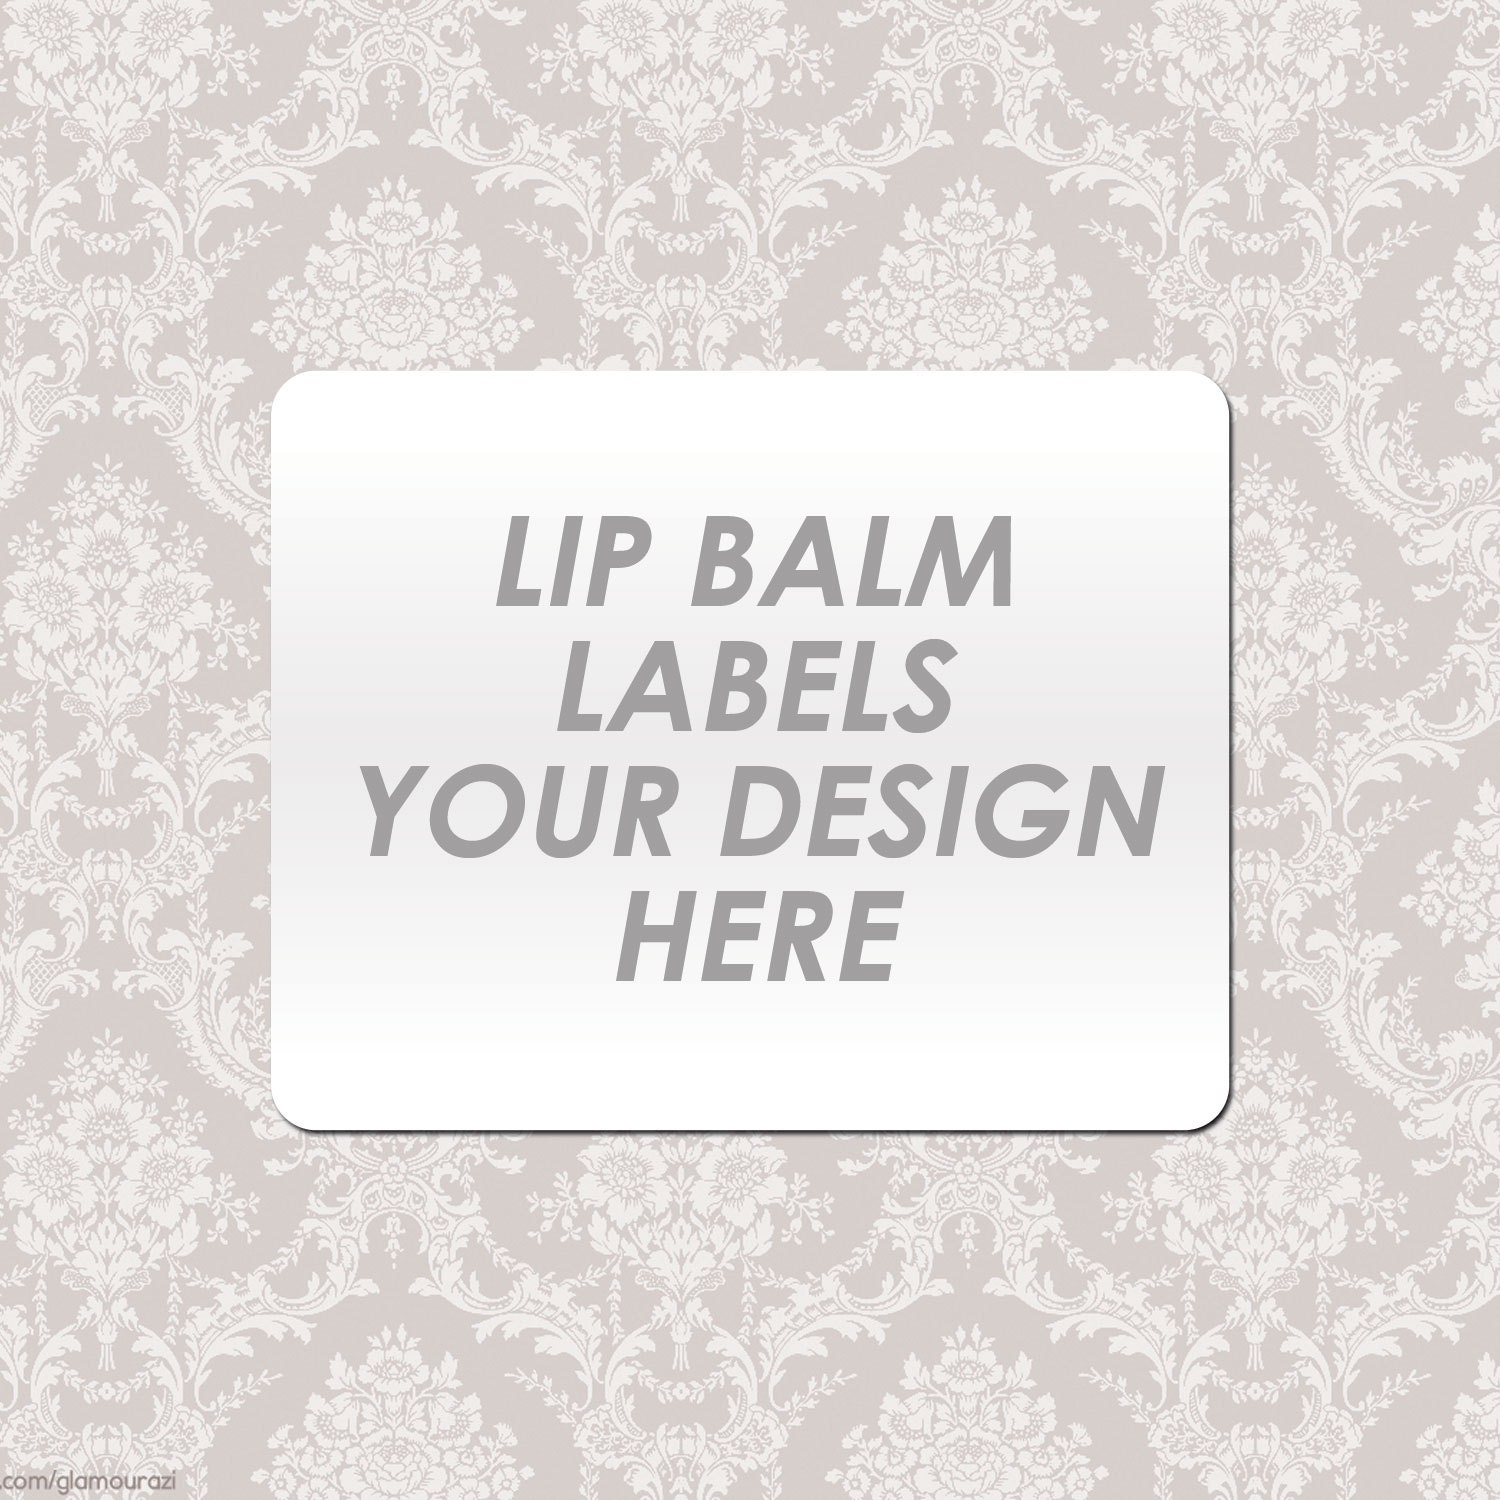 Your custom lip balm labels by limprime on etsy for Chapstick label design